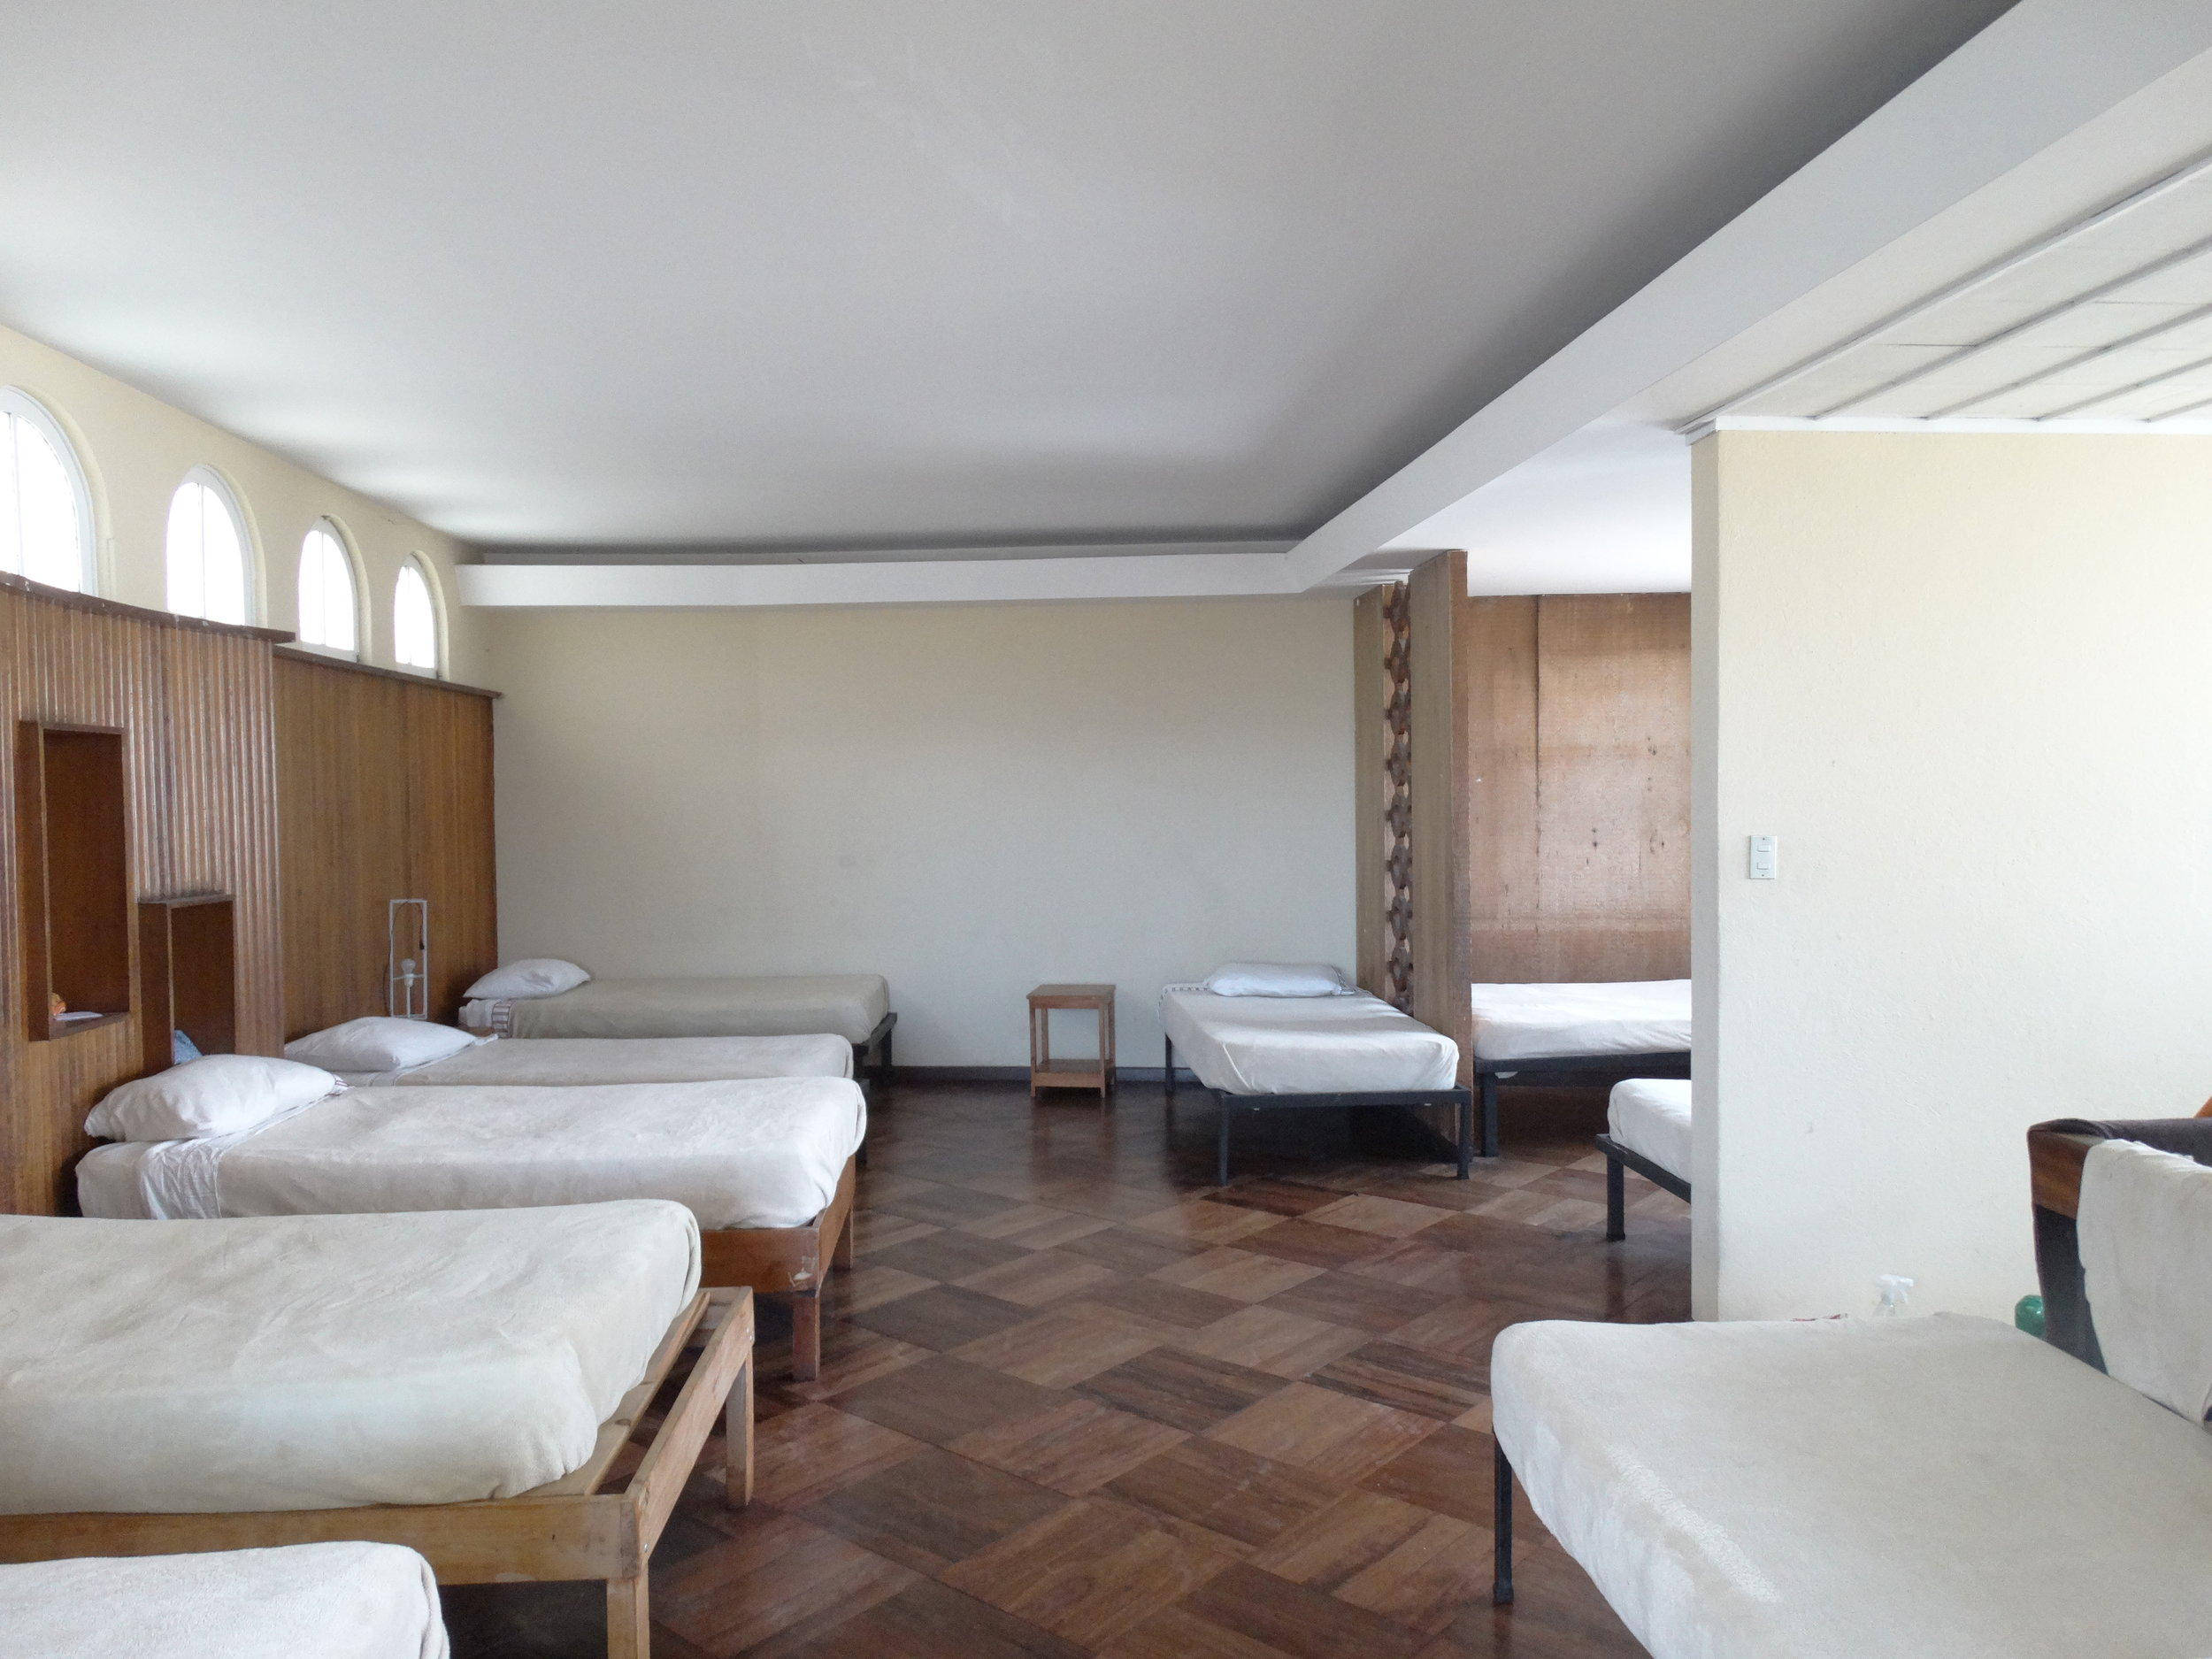 Room with multiply beds